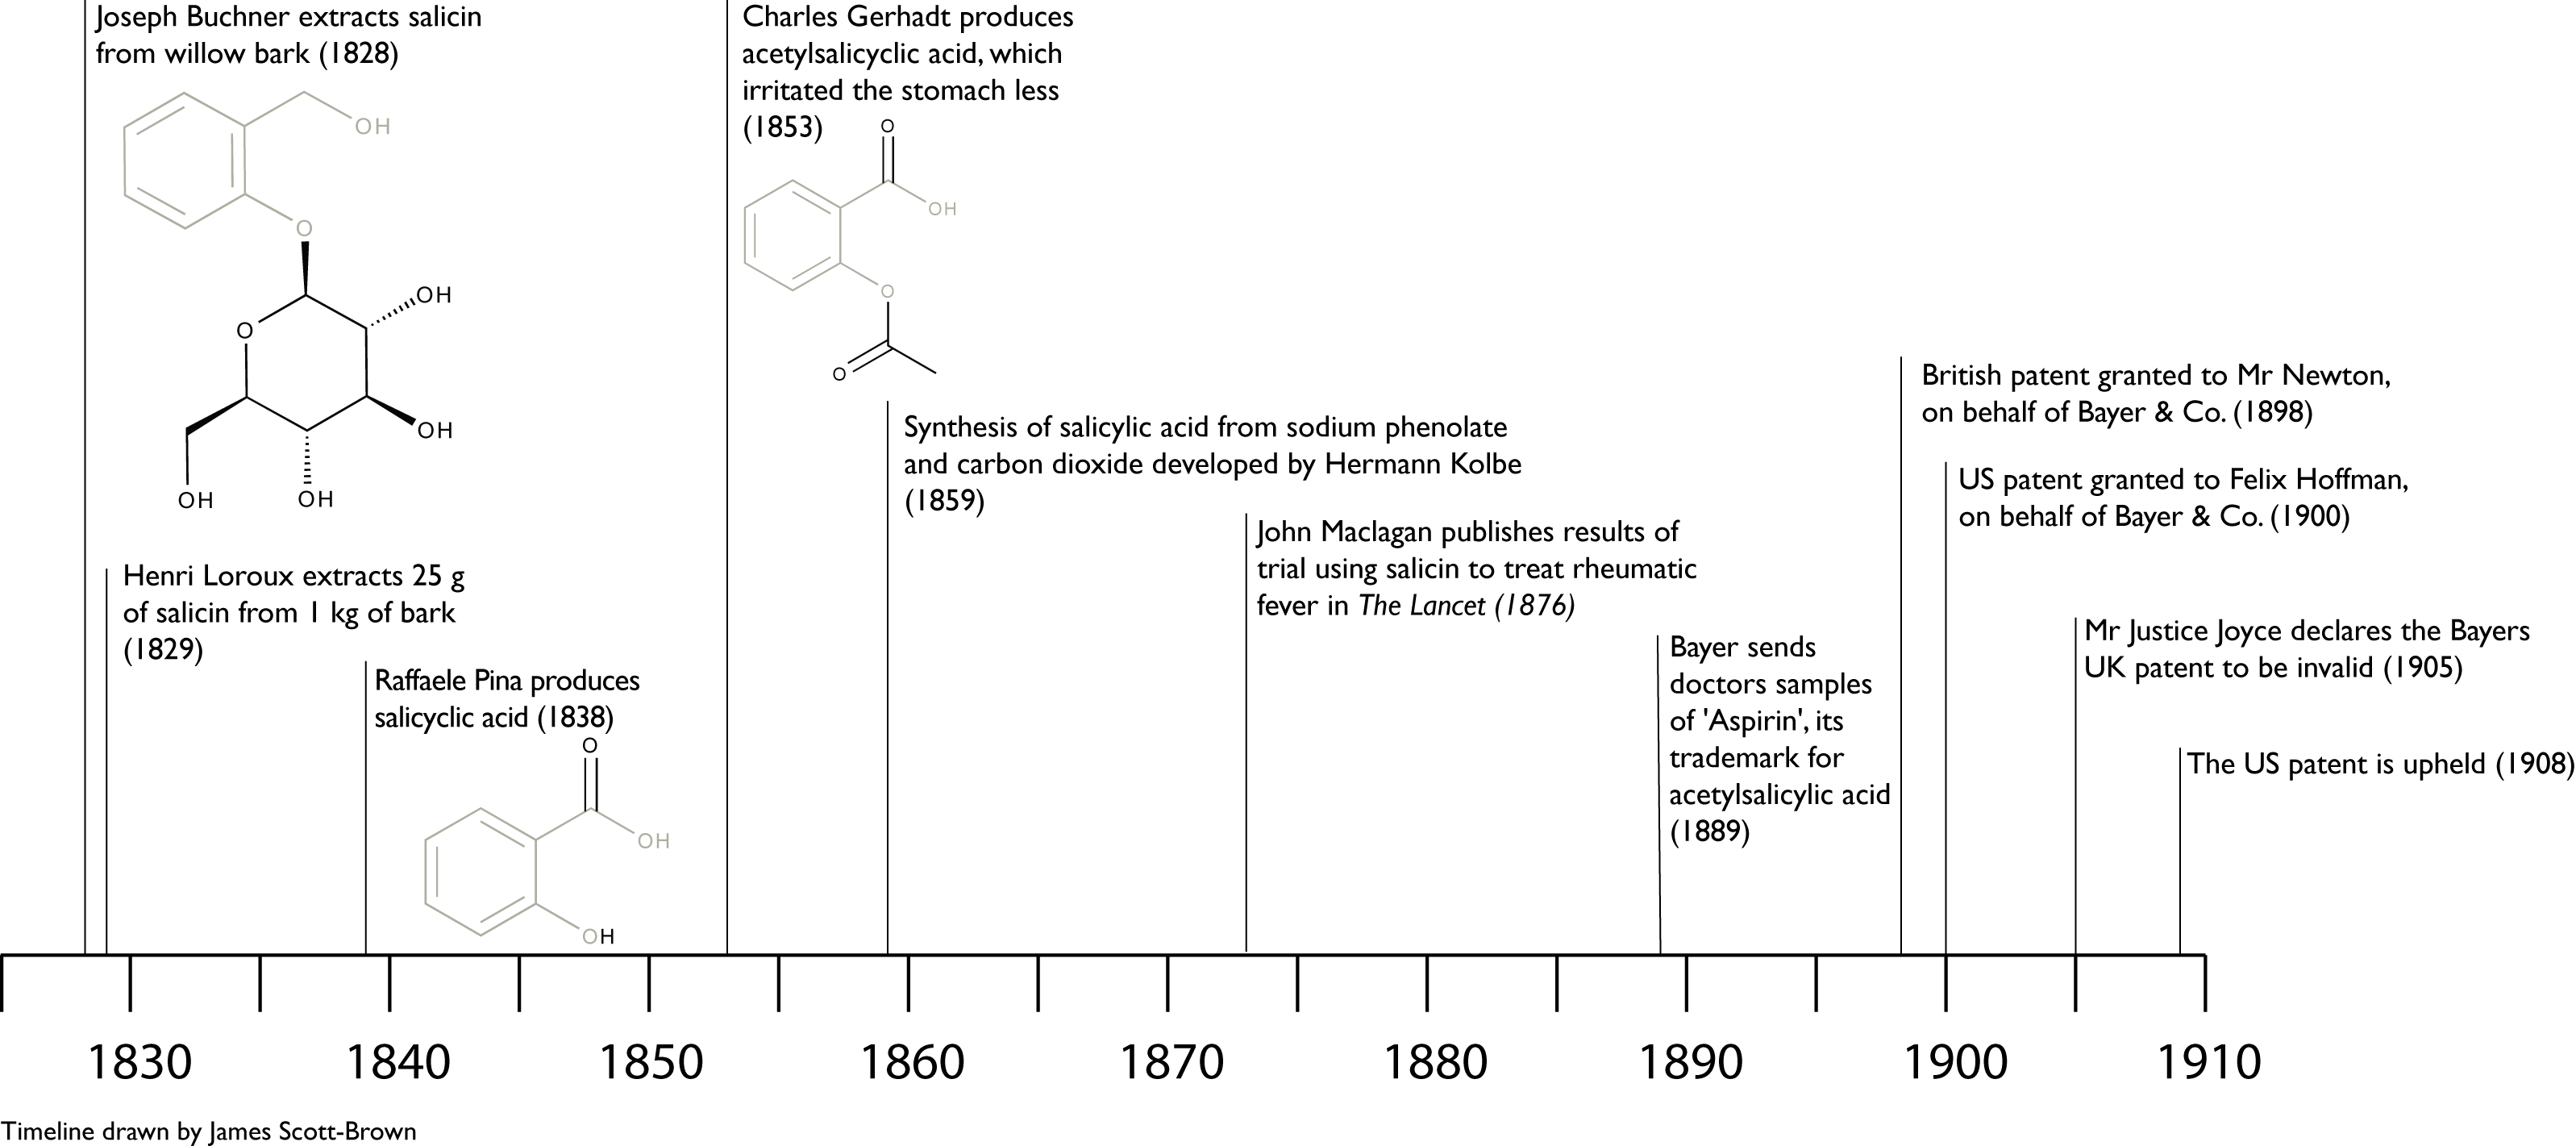 aspirin history and uses Aspirin is the most widely used over-the-counter drug in the world the average tablet contains about 325 milligrams of the active ingredient acetylsalicylic acid with an inert binding material such as starch aspirin is used to relieve pain, reduce inflammation, and lower fever aspirin .